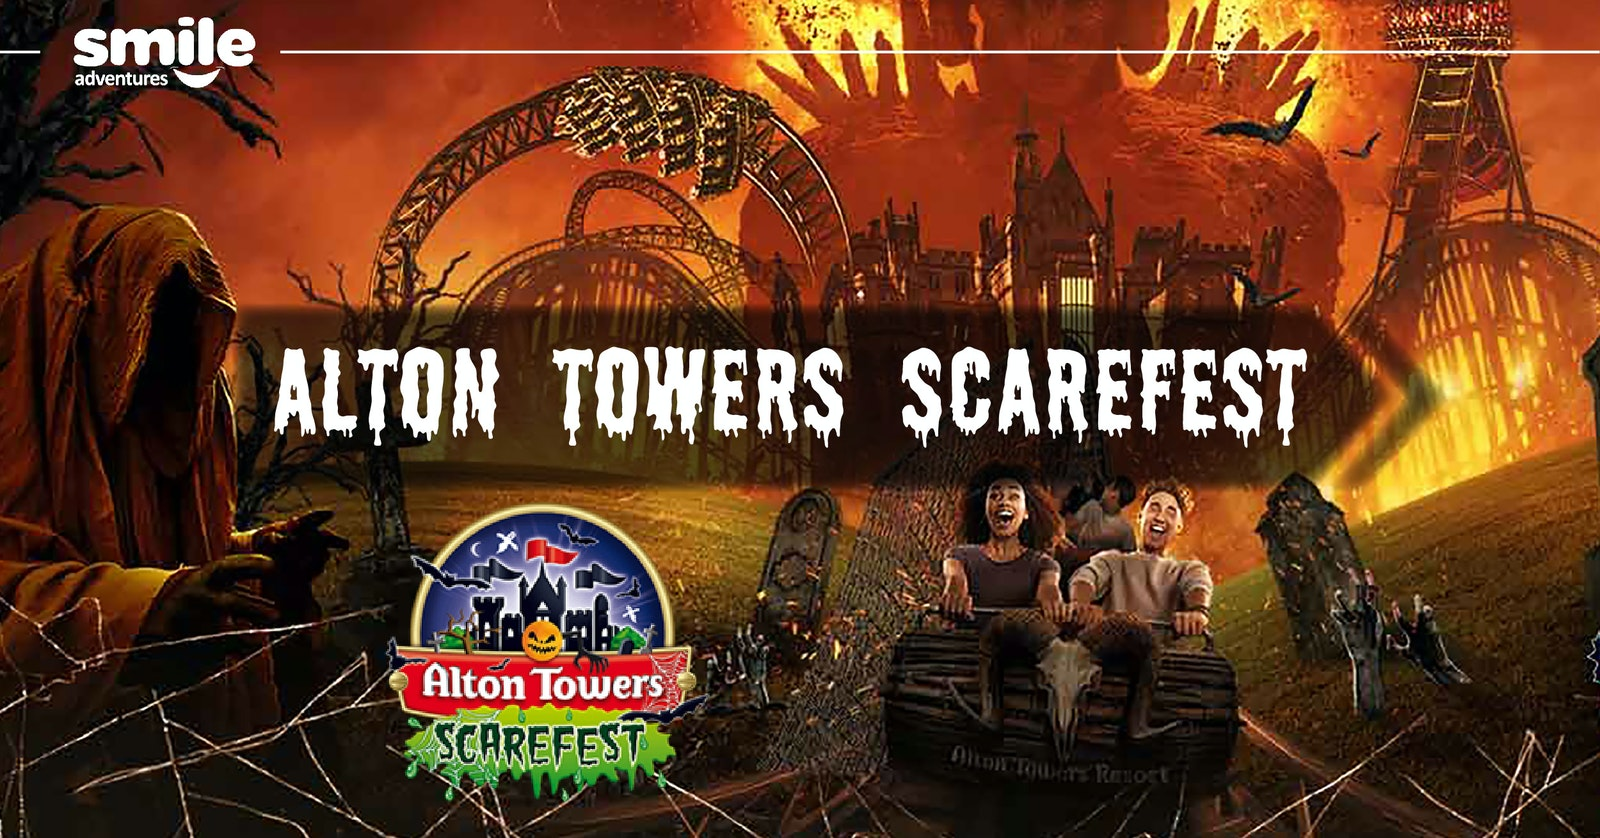 Alton Towers  SCAREFEST! – From Manchester